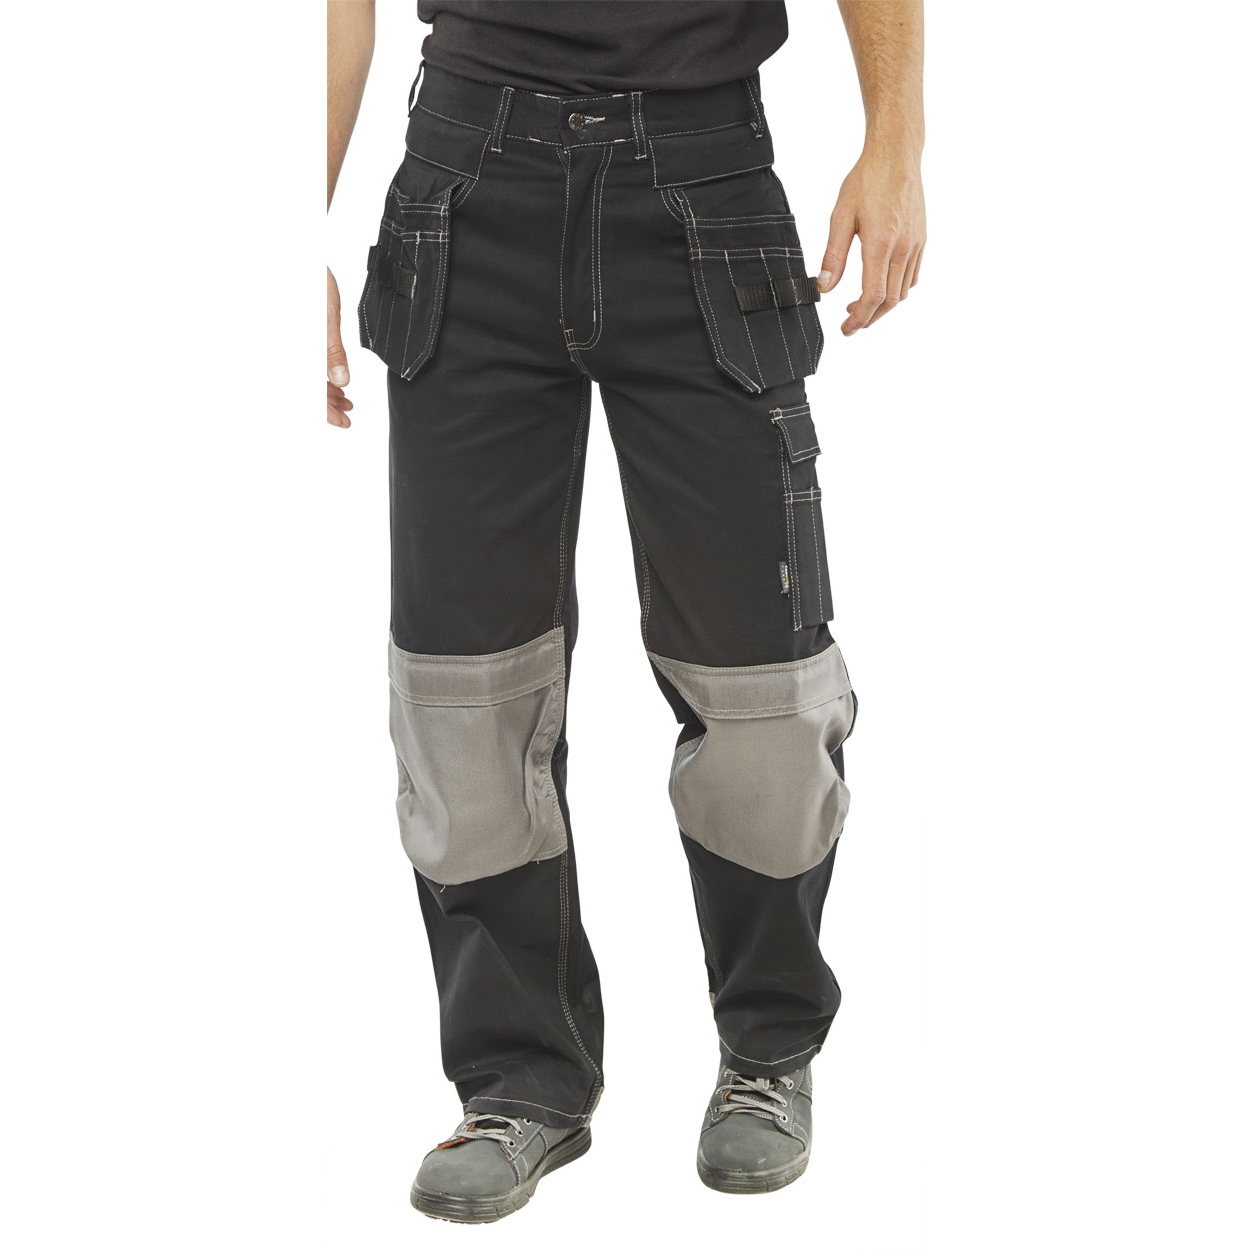 Click Workwear Kington Trousers Multipurpose Pockets Black 40 Ref KMPTBL40 Up to 3 Day Leadtime